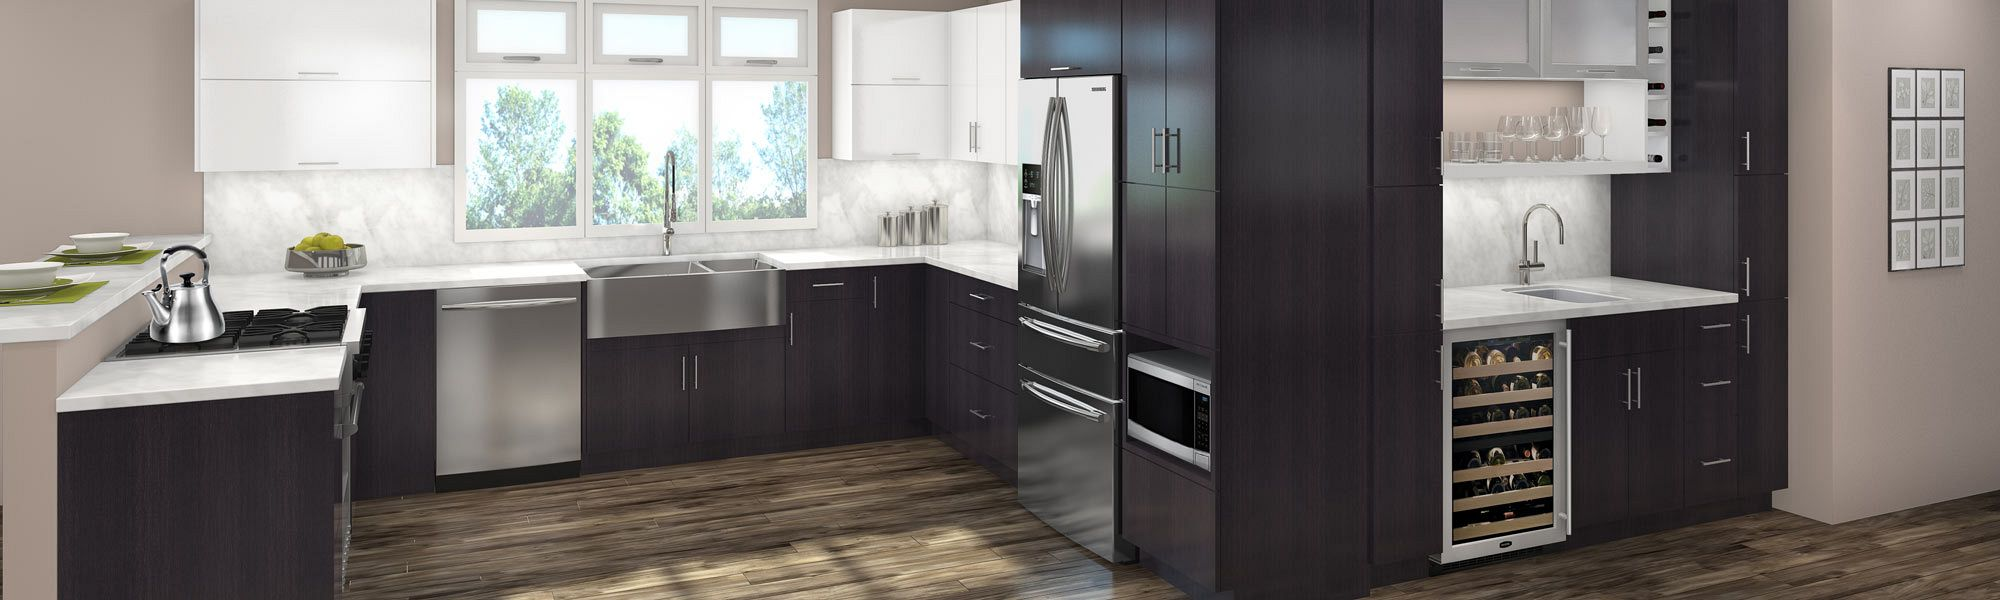 Discover Your New Kitchen